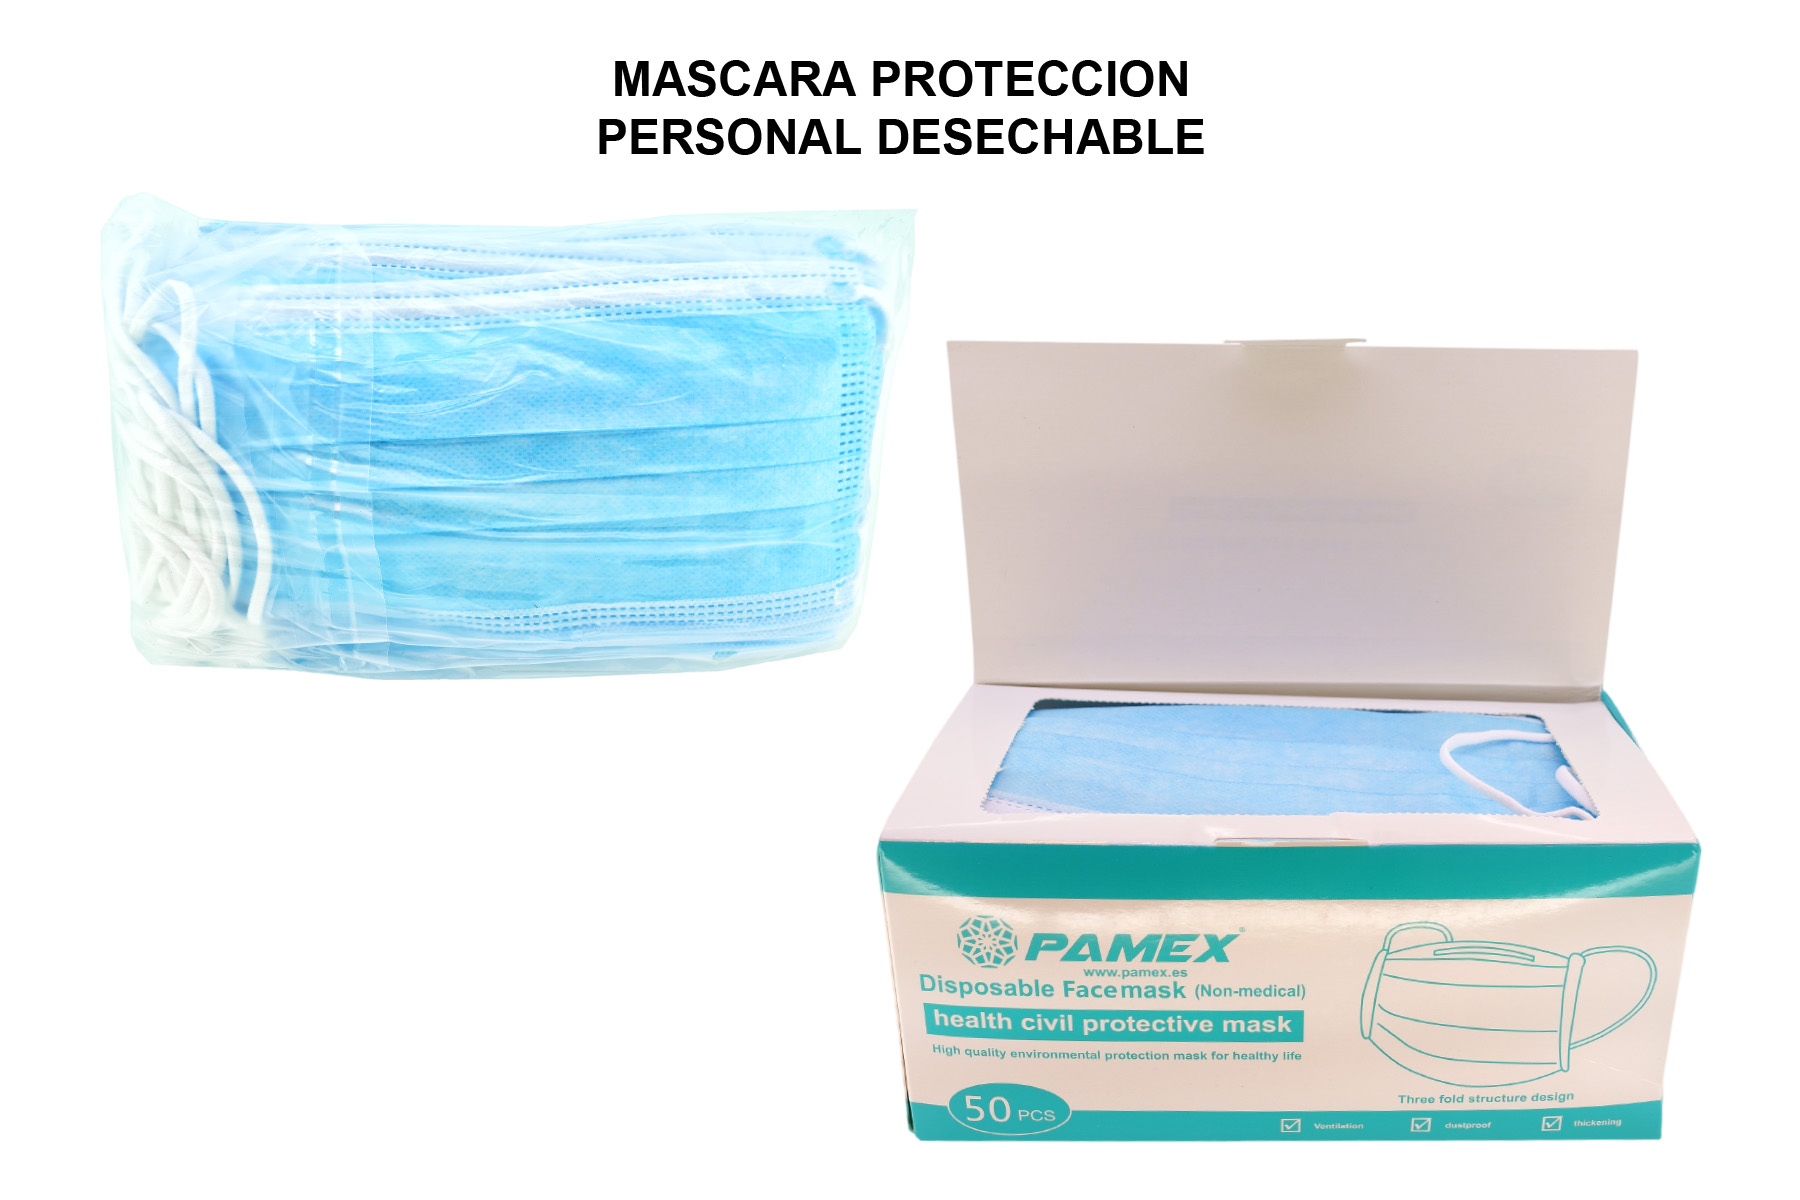 MASCARA PROTECCION PERSONAL DESHECHABLE